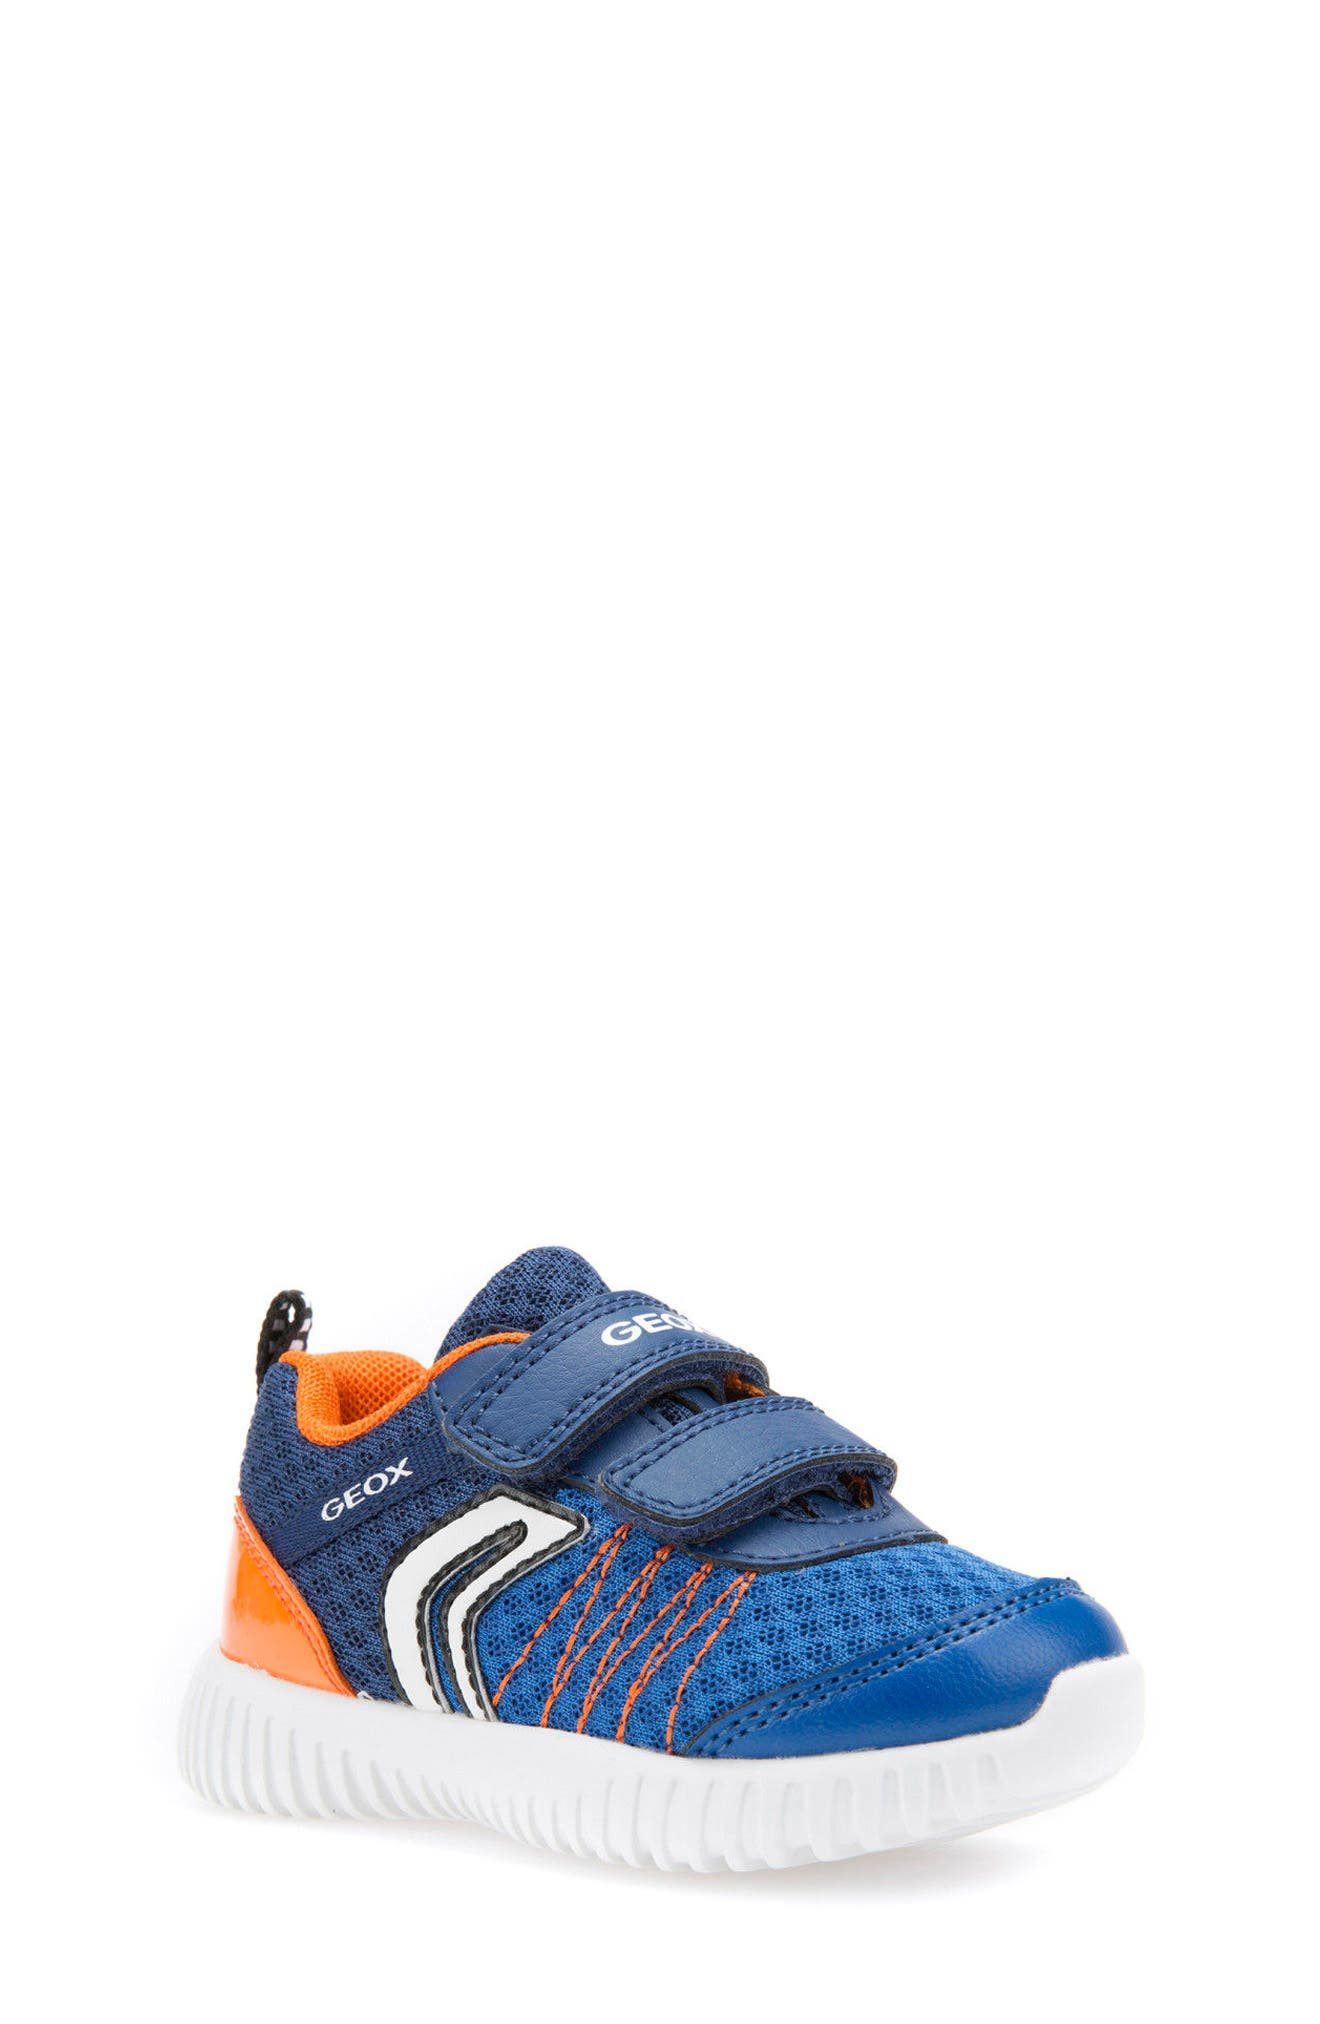 Waviness Waterproof Sneaker,                         Main,                         color, NAVY/ ORANGE